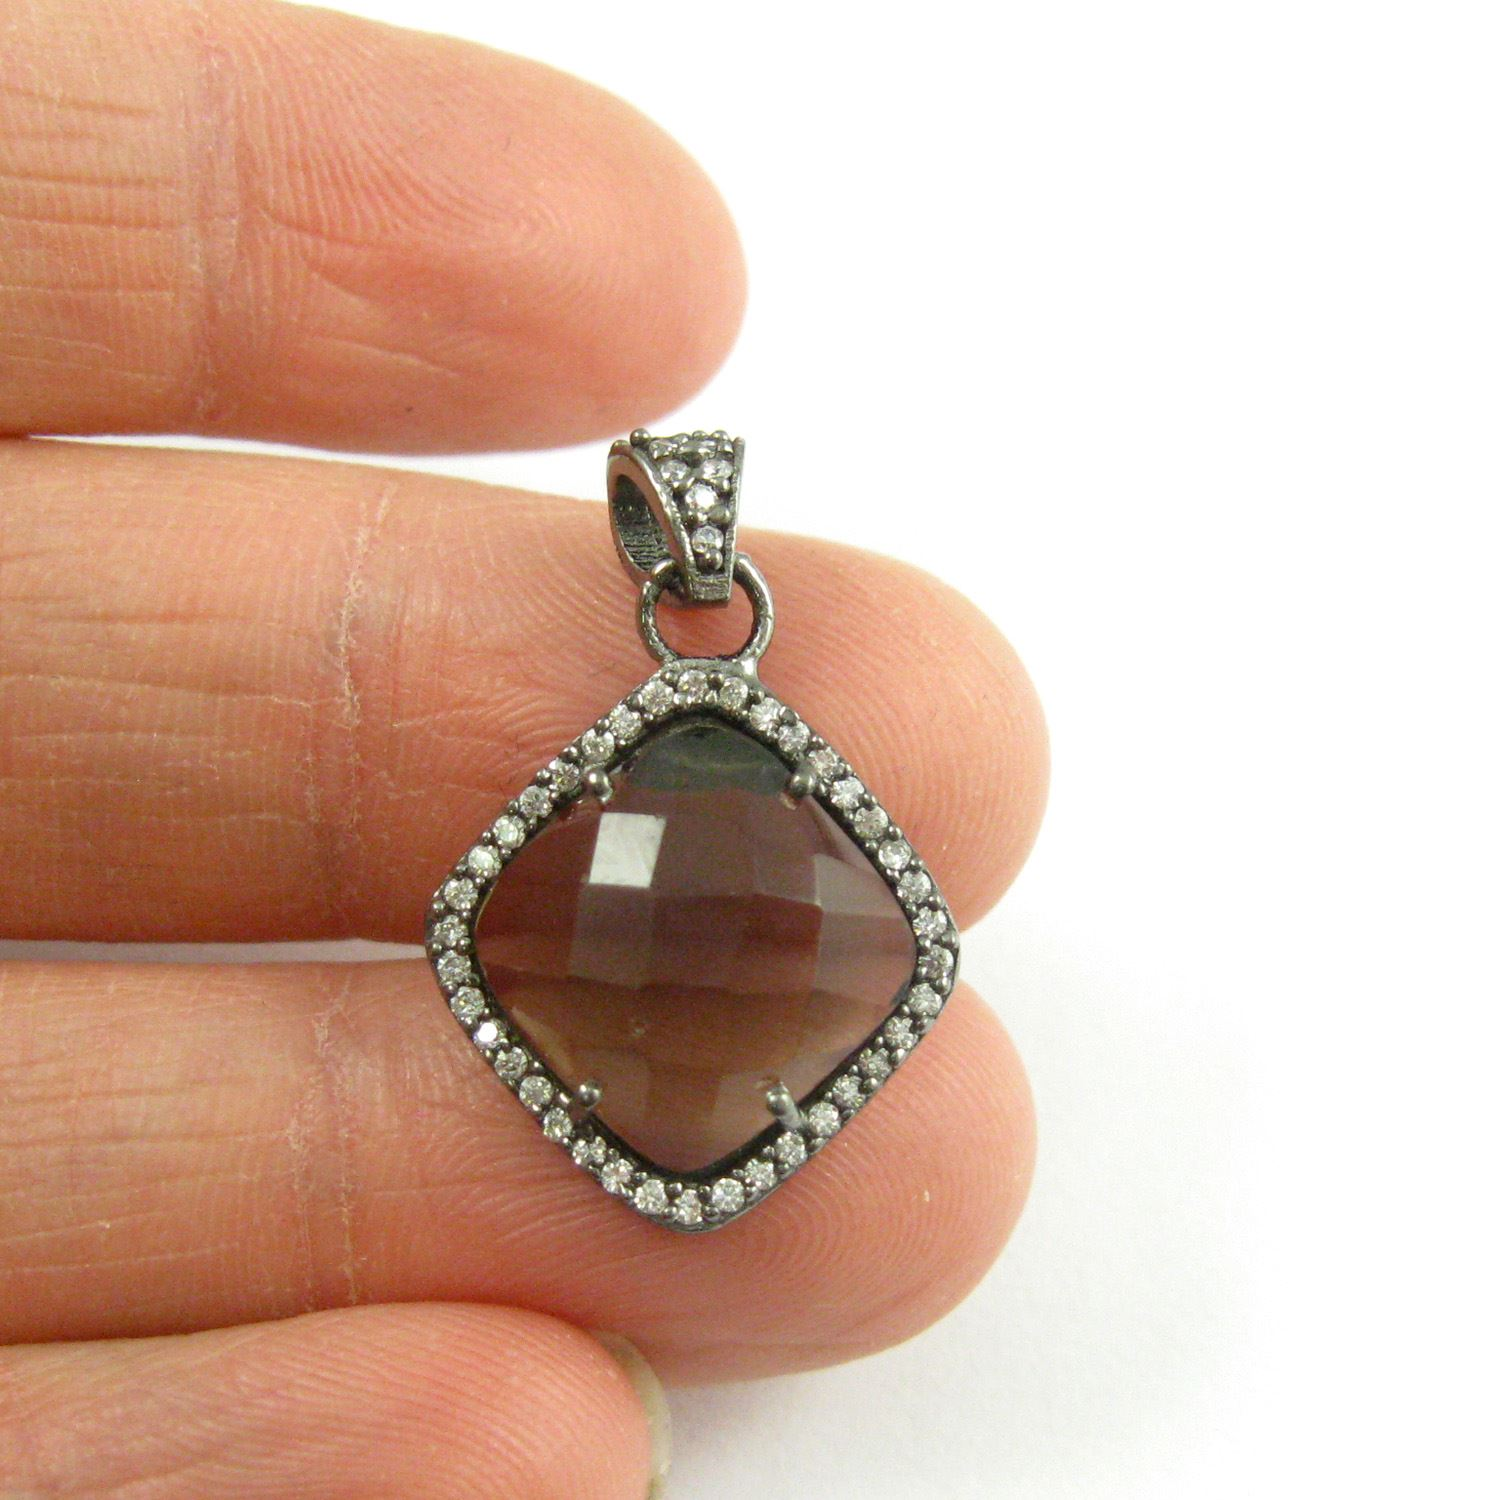 Oxidized Sterling Silver Pave Bezel Gemstone Pendant - Cubic Zirconia Pave Setting -  Diamond Shape Faceted Stone- Smokey Quartz - 17mm